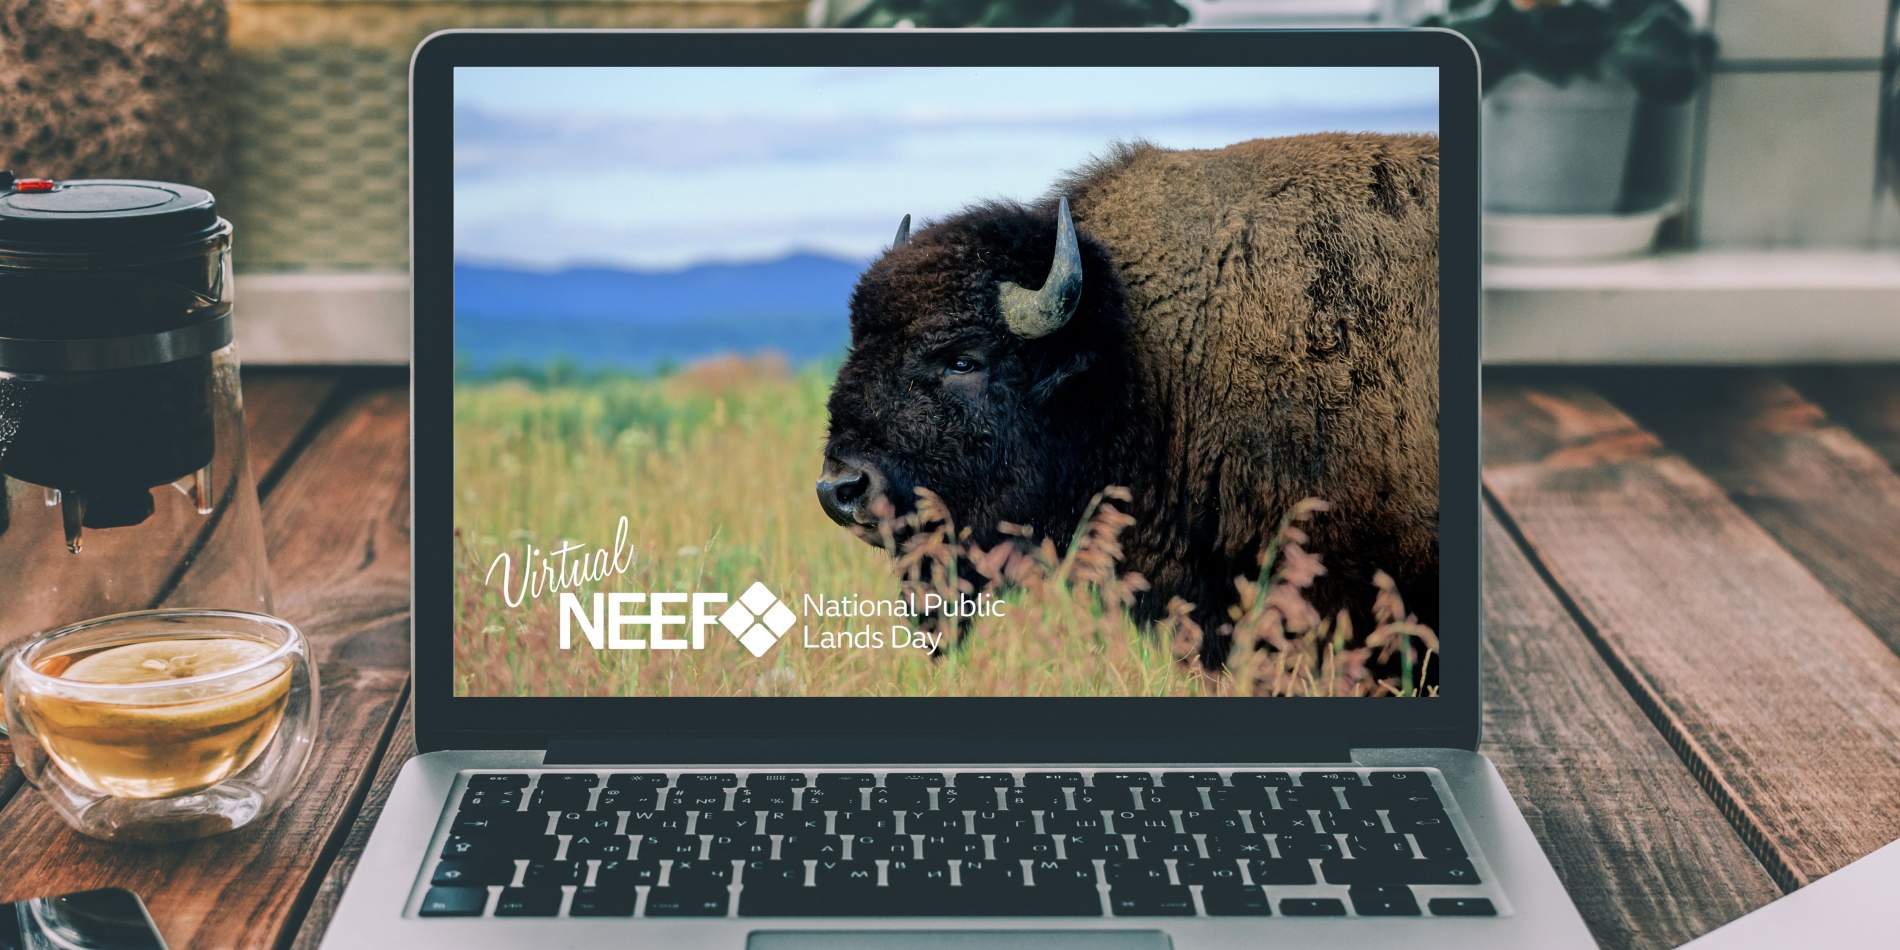 Laptop on table; Copyright: RayBond (https://stock.adobe.com/images/laptop-on-table/153503397) and Martha Marks (https://stock.adobe.com/images/iconic-american-bison-in-grand-teton-national-park-in-wyoming/85213115)